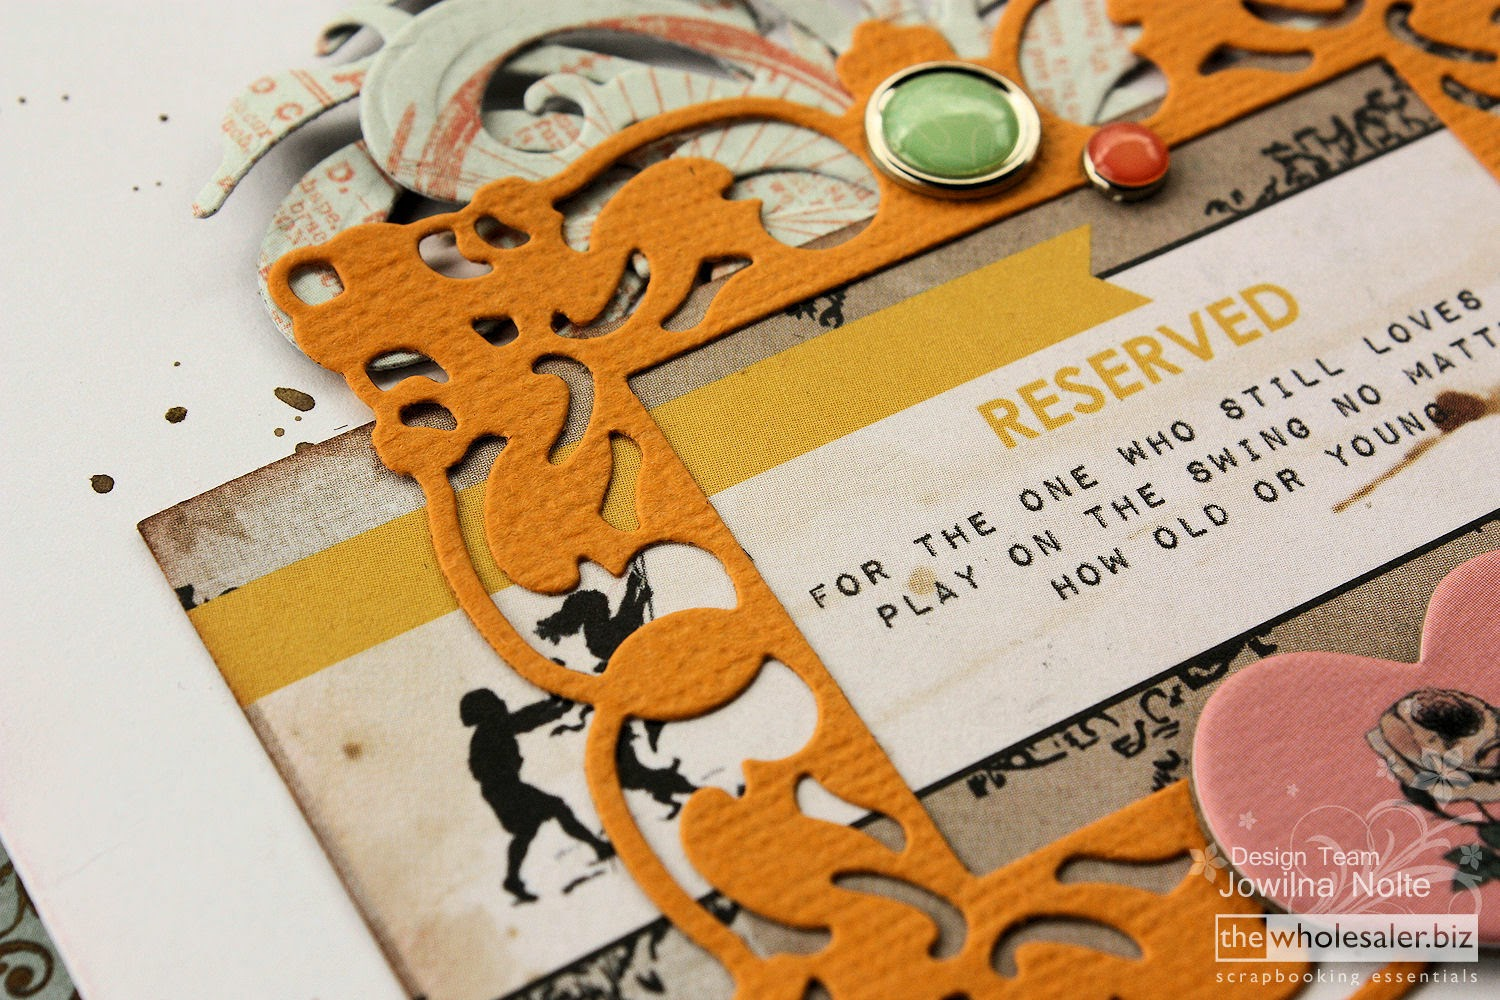 Layered die-cuts on a card - The Wholesaler. - imagine the ...